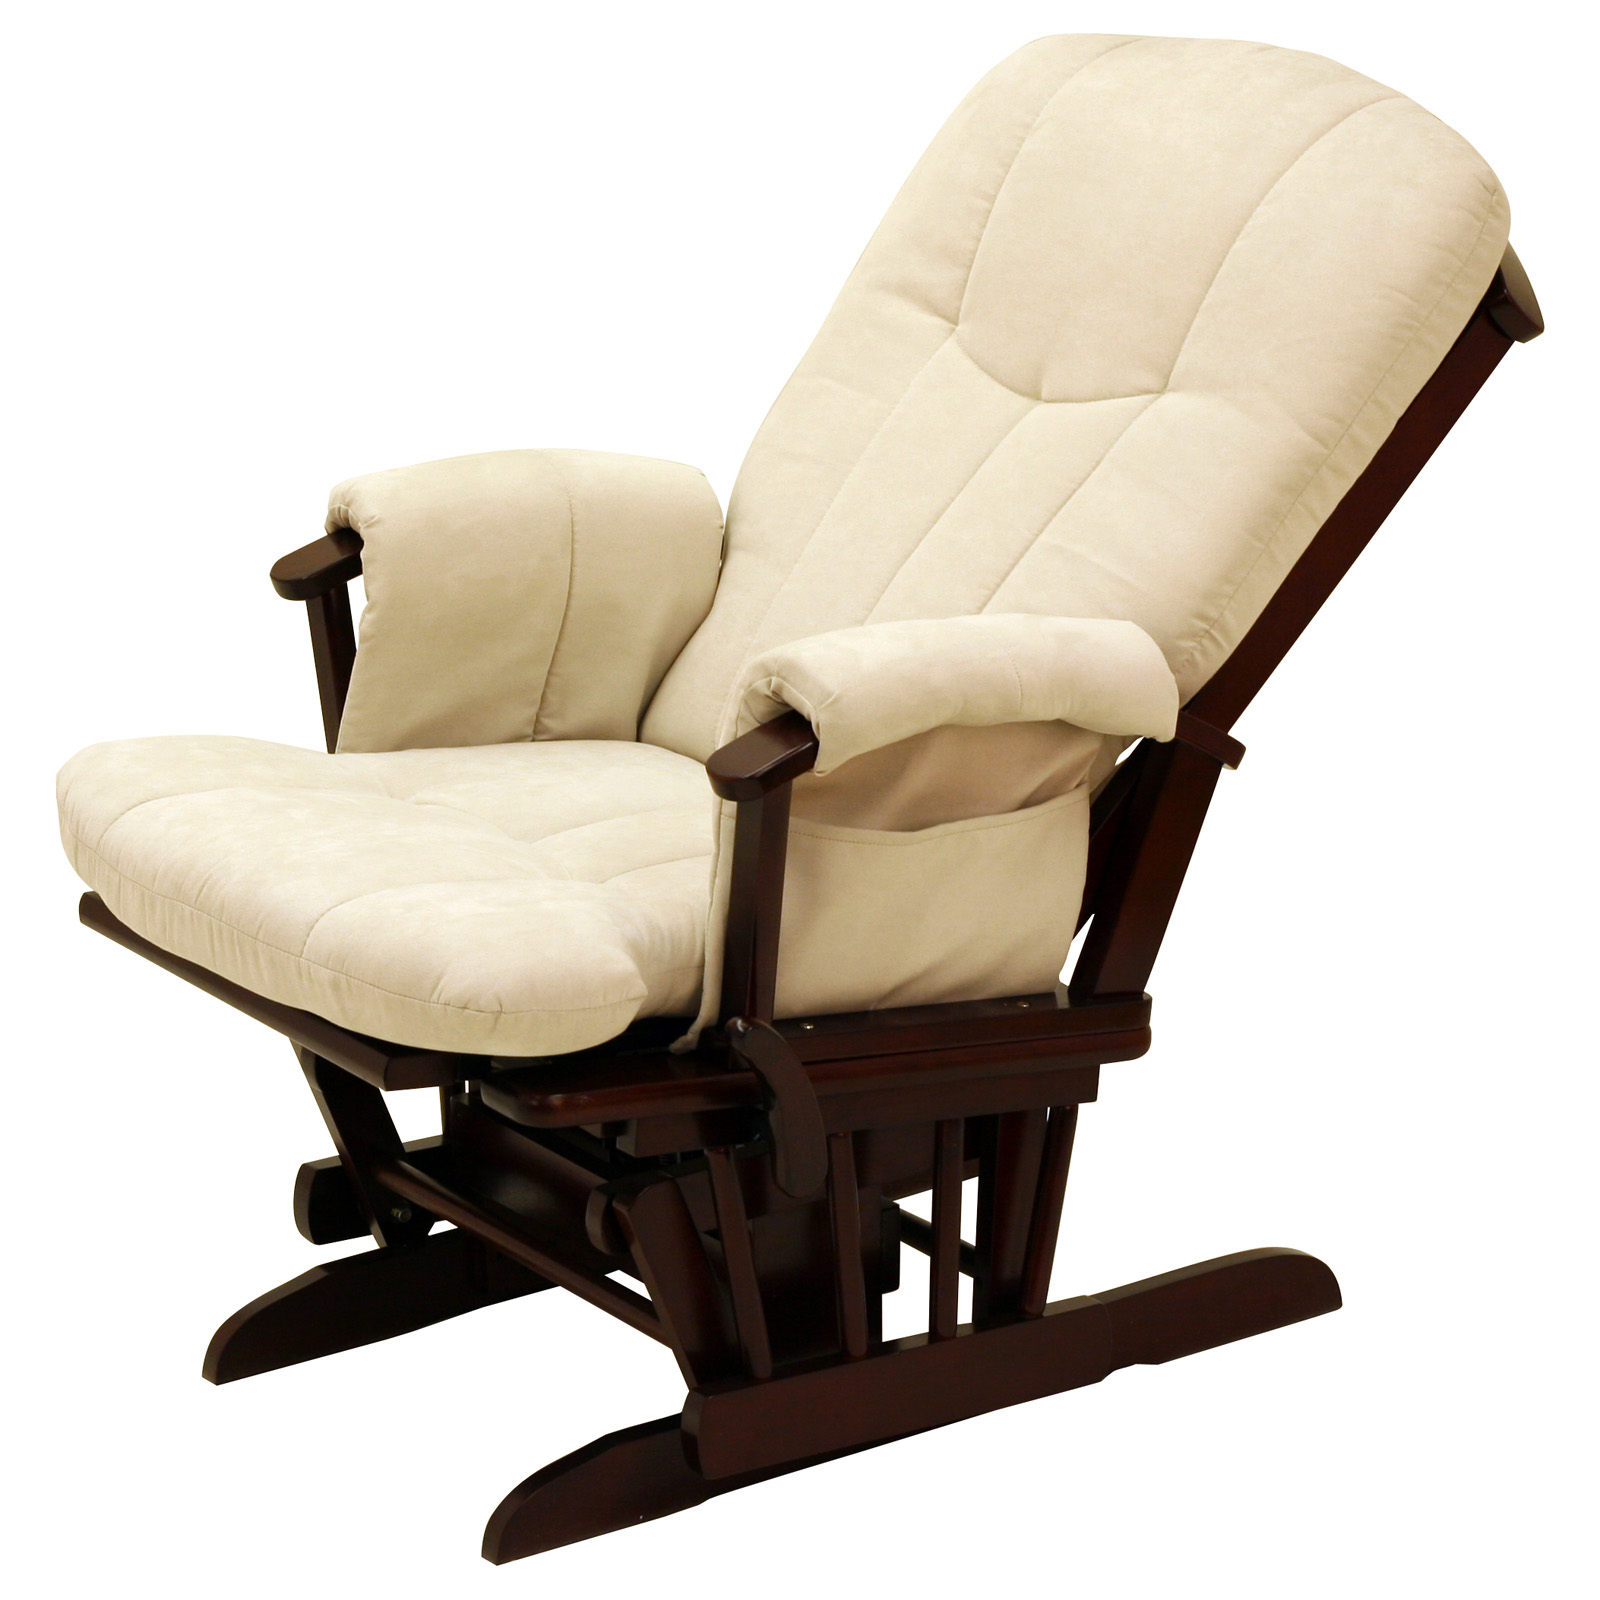 Gliding Rocking Chair Storkcraft Deluxe Reclining Glider Rocker Cherry Beige